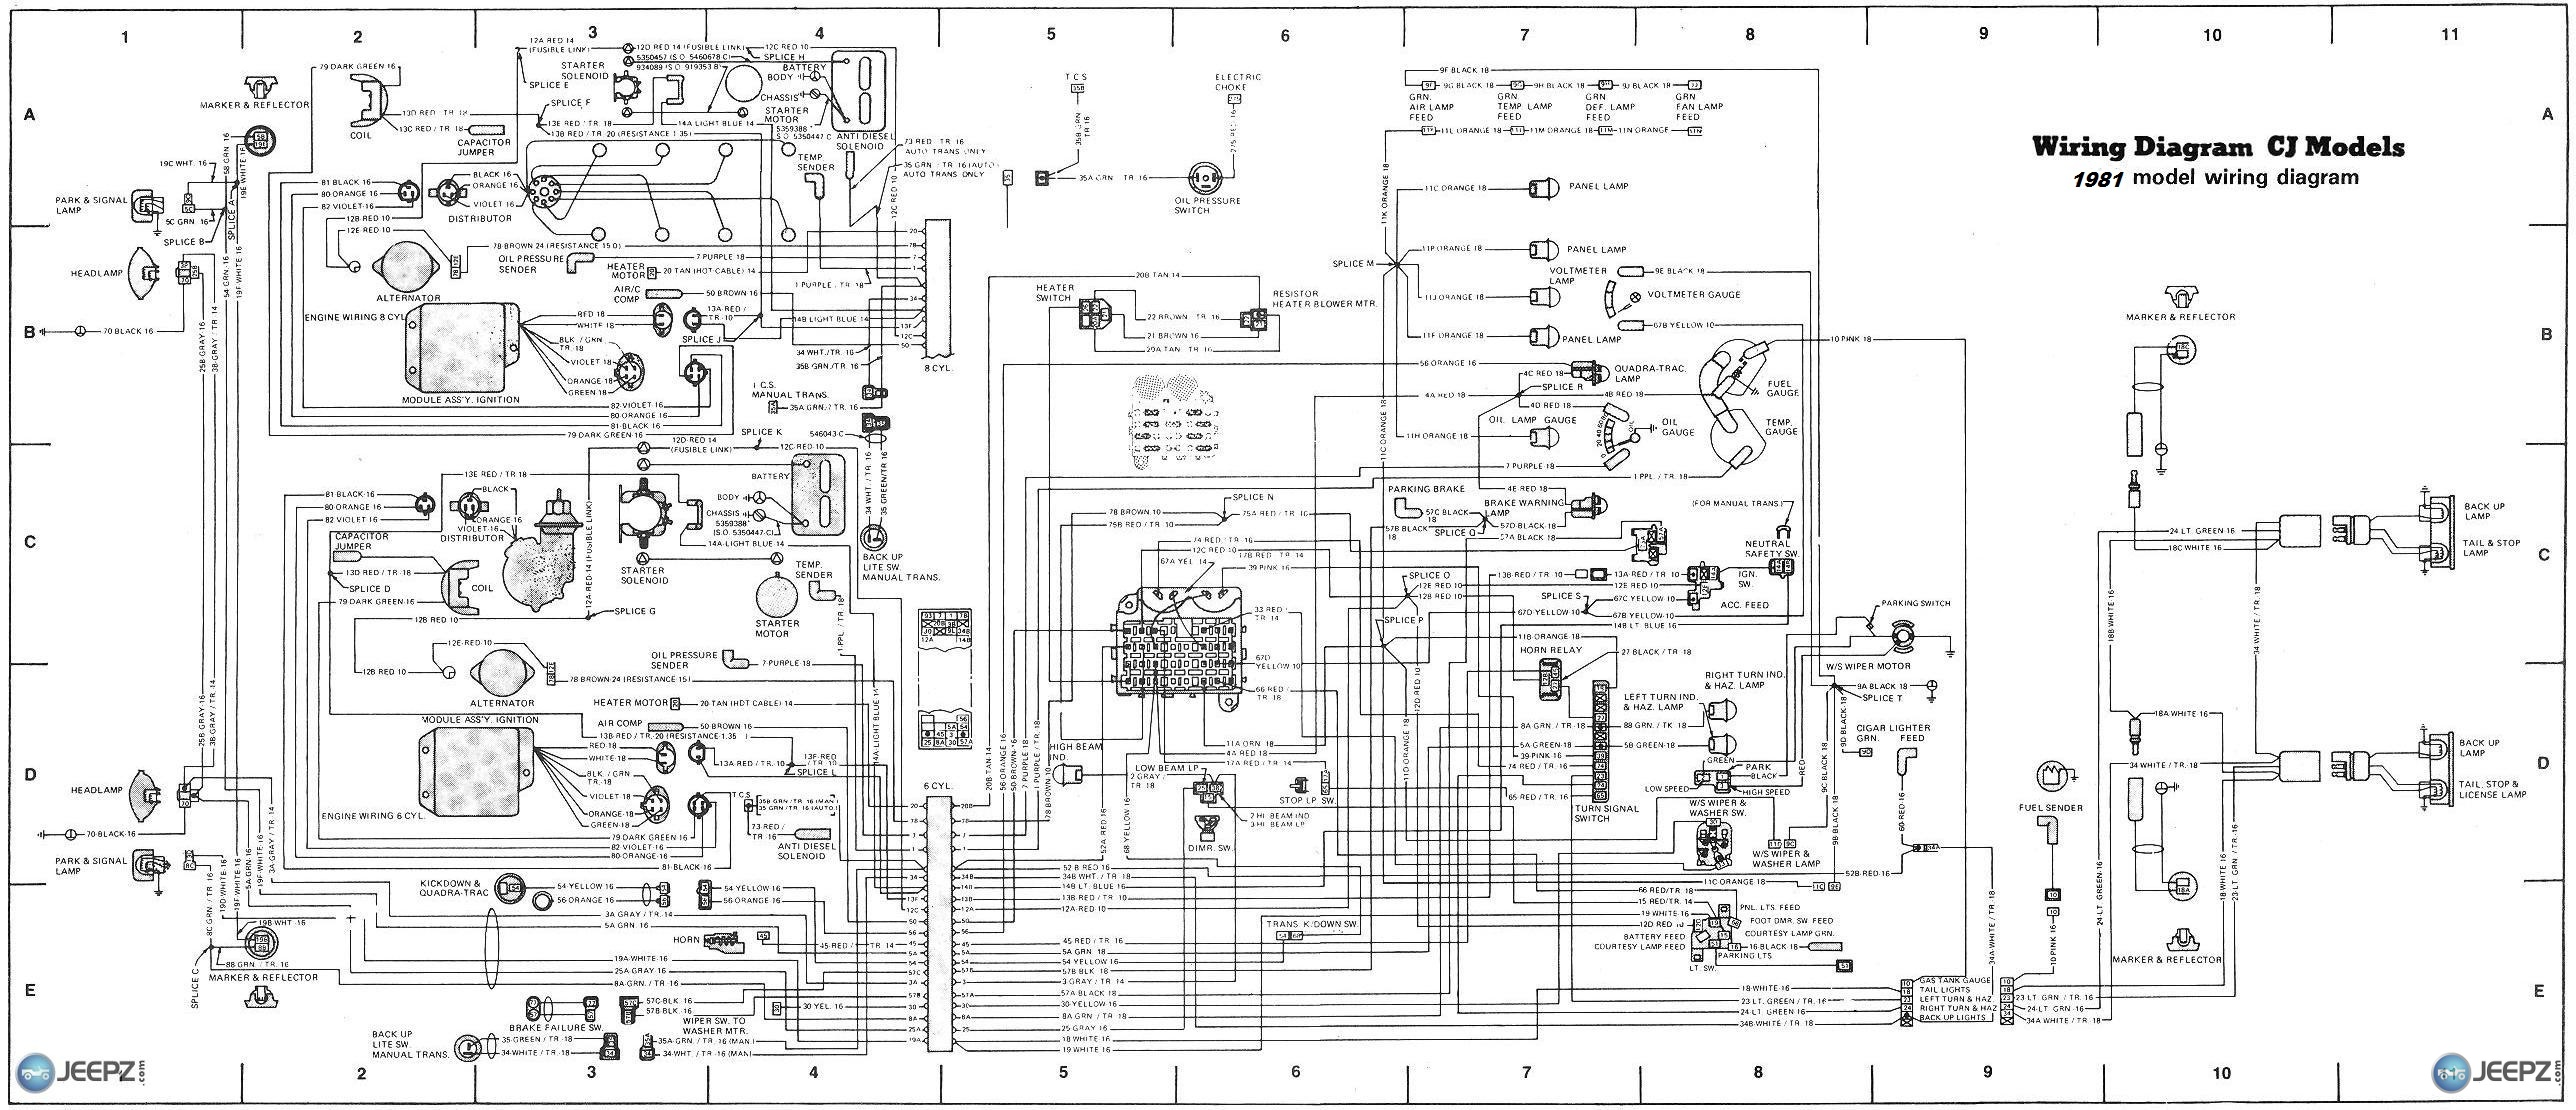 wiring diagram for 87 jeep wrangler simple wiring diagram rh david huggett  co uk 2001 jeep grand cherokee power seat wiring diagram jeep jk heated  seat ...